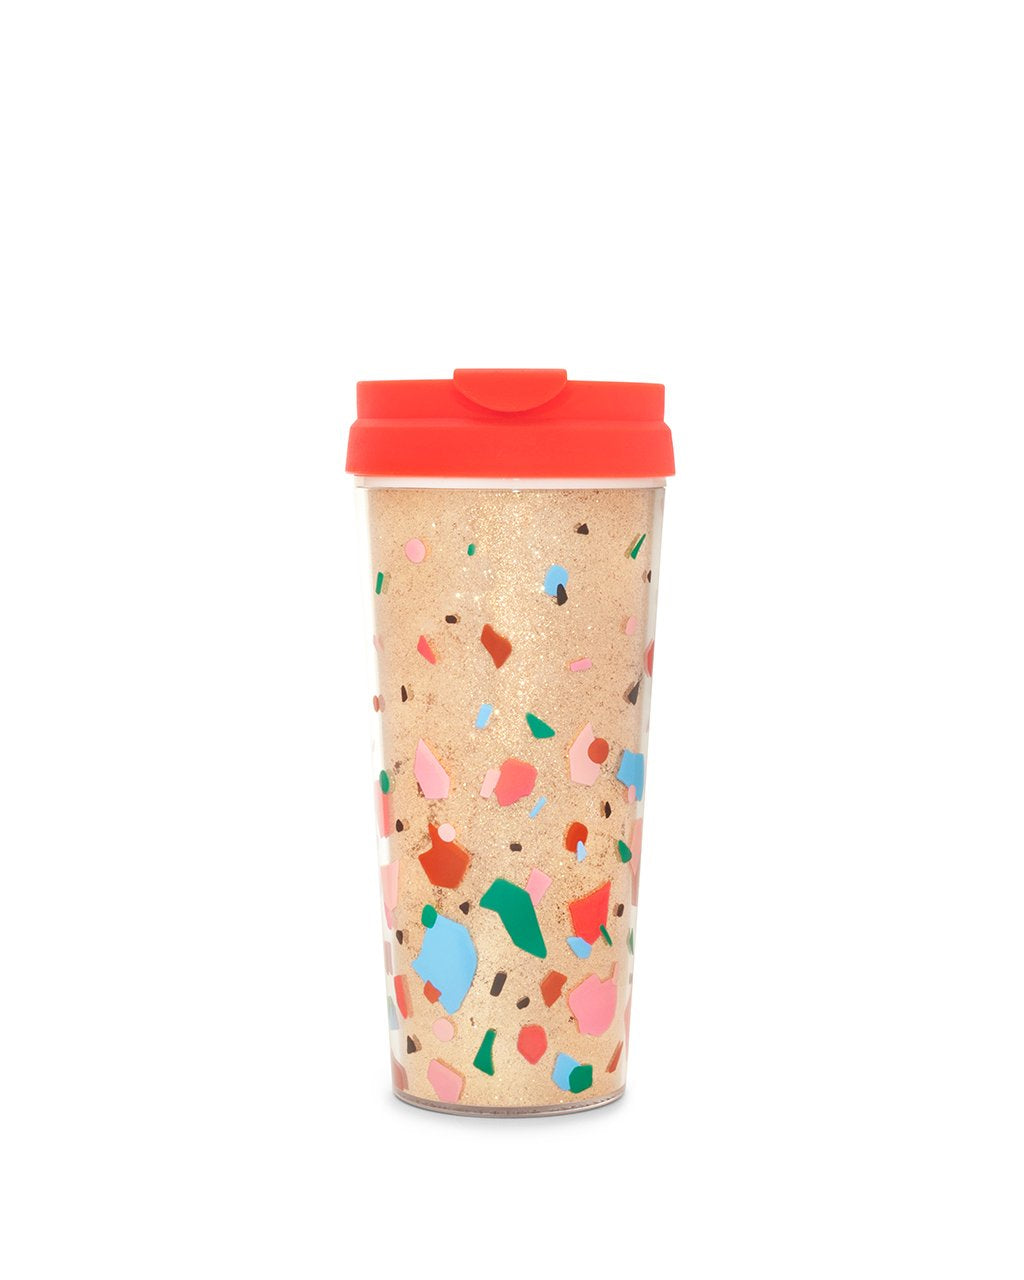 This mug comes in shiny gold with a bright red lid and colorful abstract shapes printed on the side.